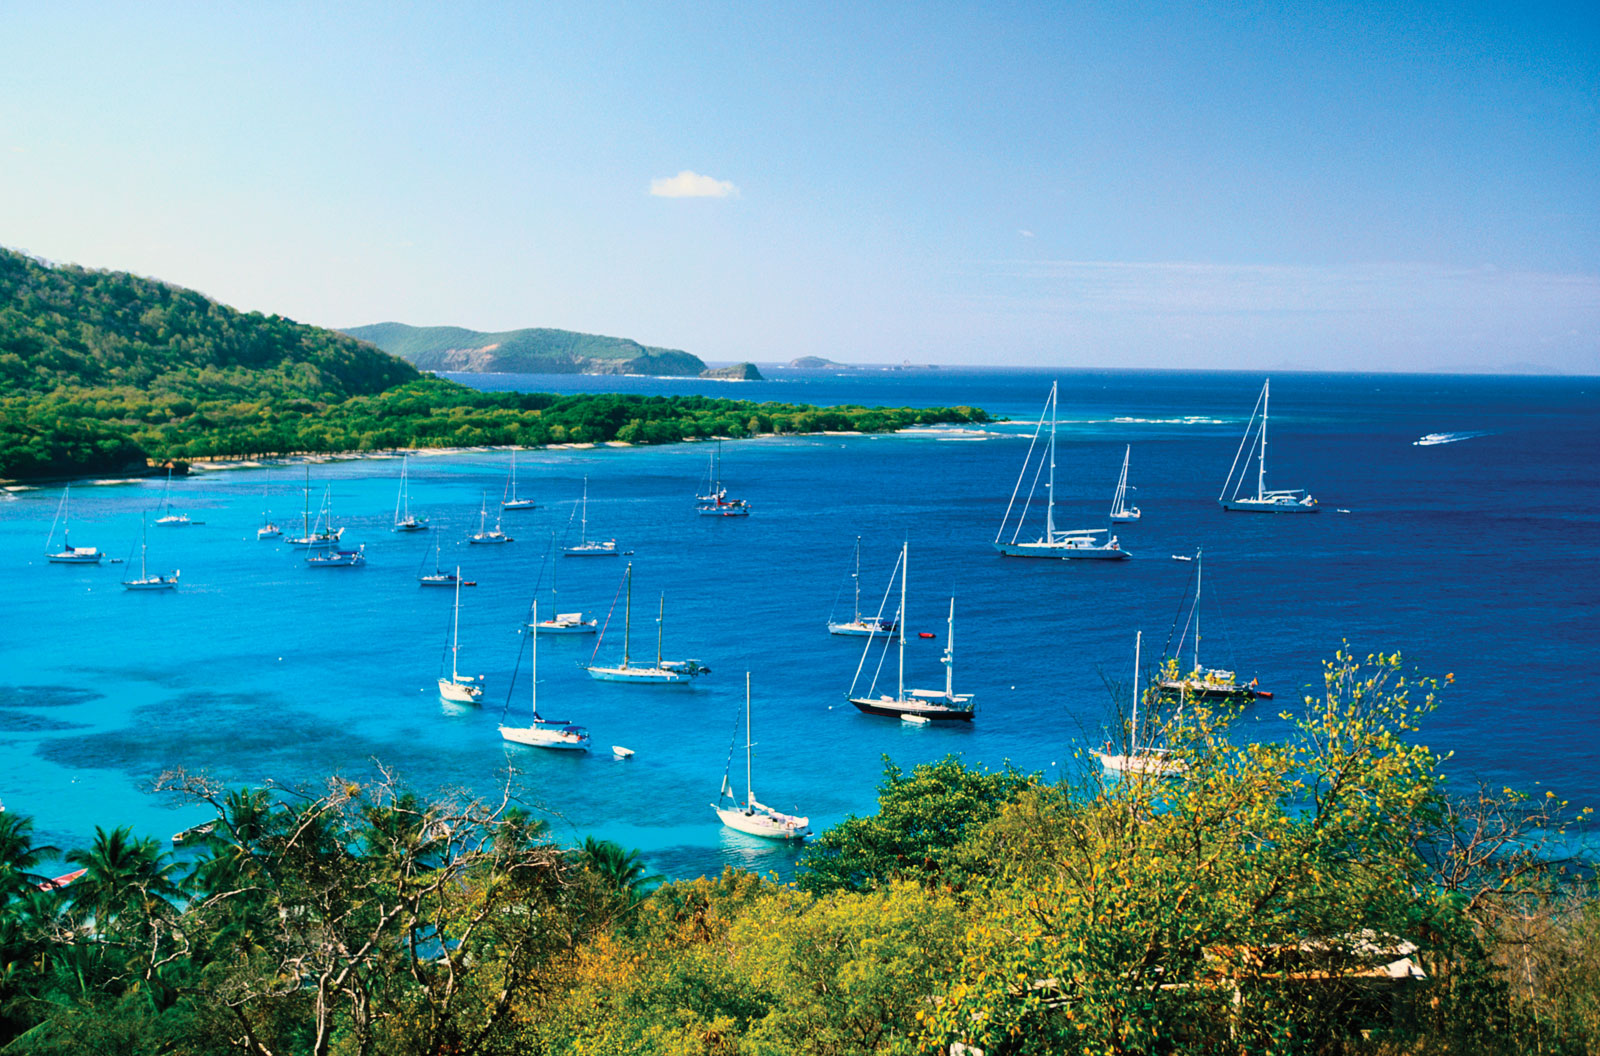 ...and it's also the perfect place for yachting holidays.